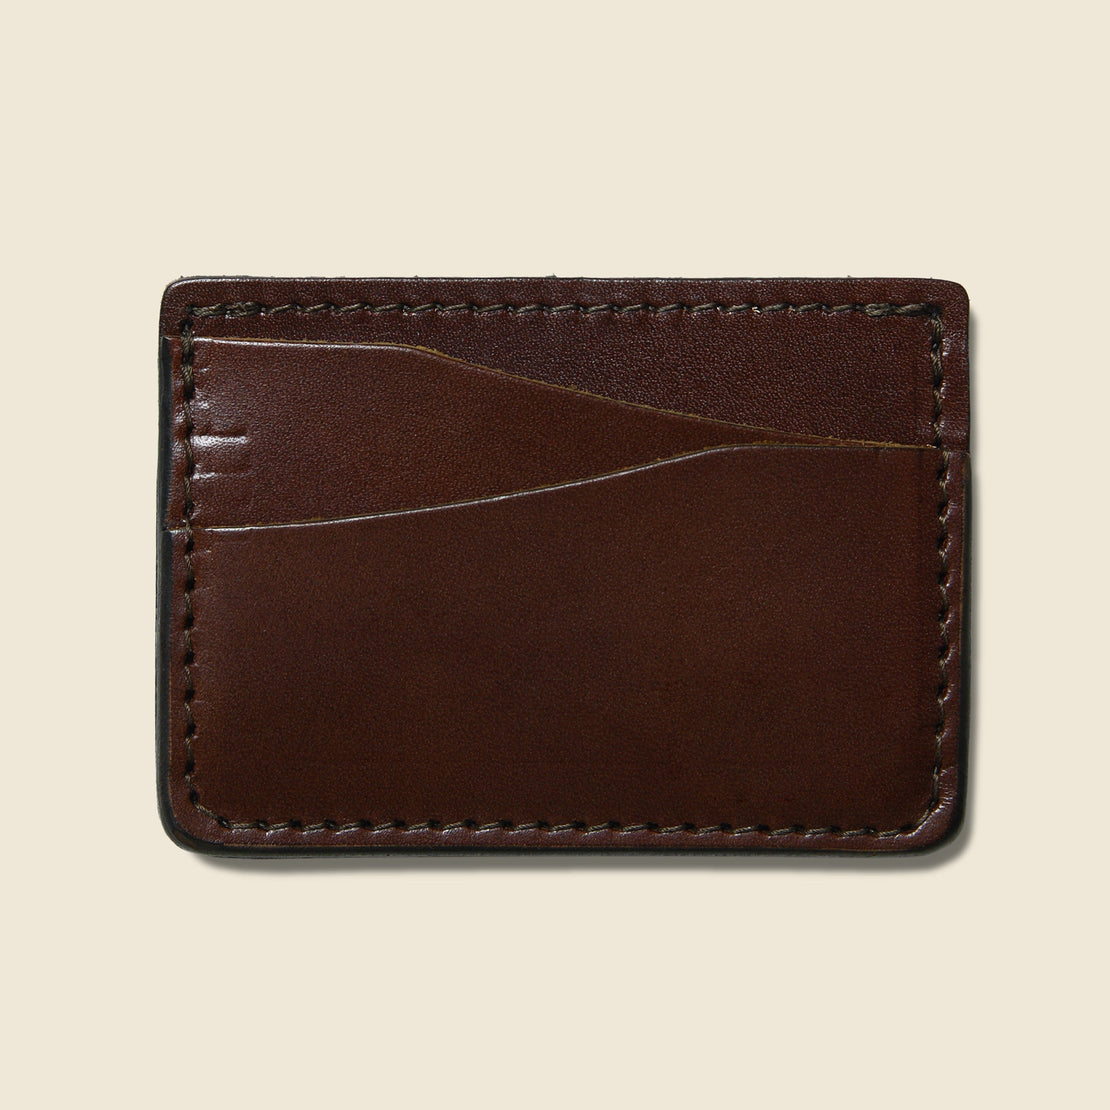 Journeyman Wallet - Cognac - Tanner - STAG Provisions - Accessories - Wallets